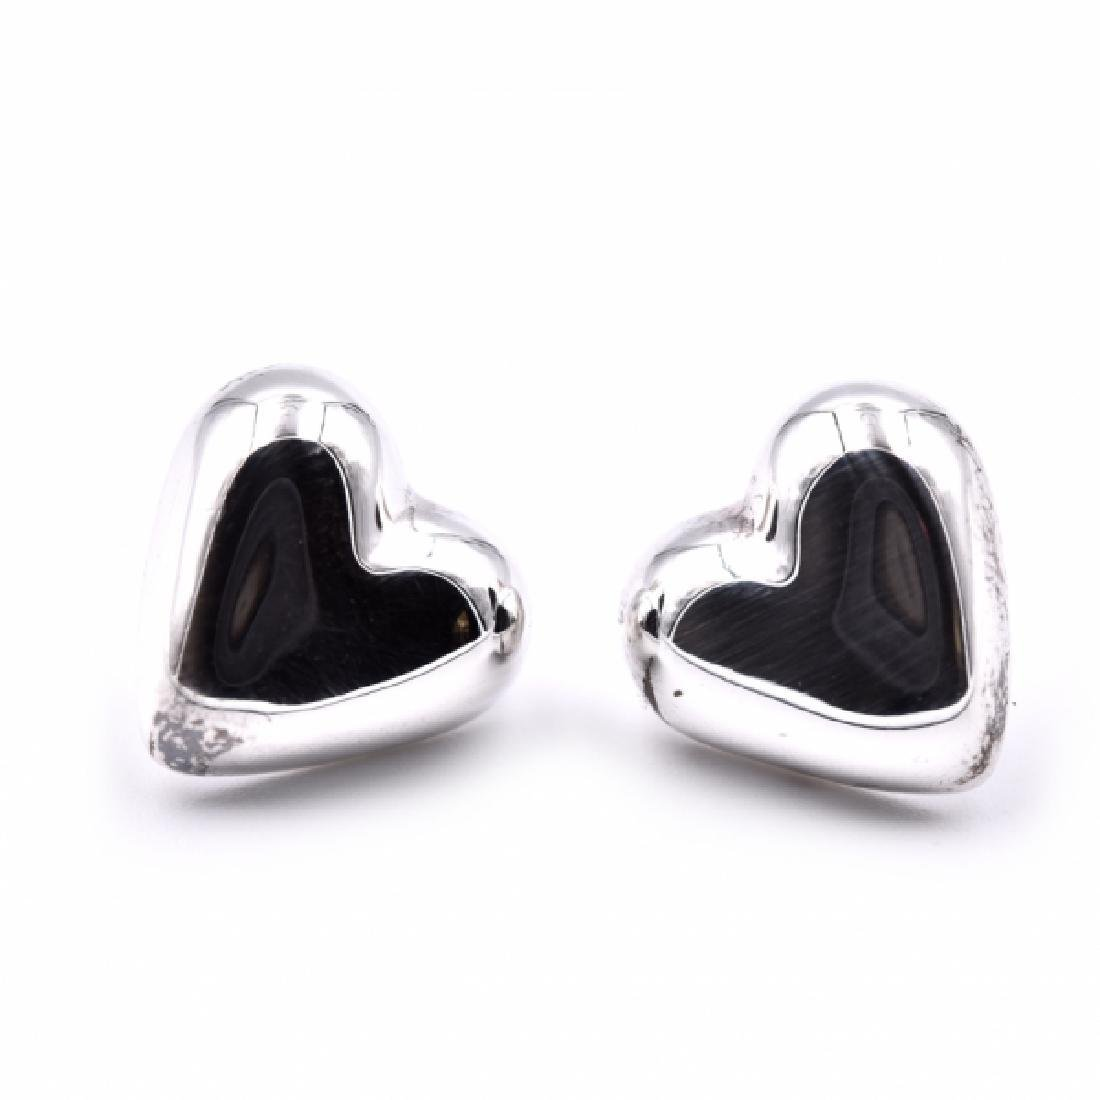 Tiffany & Co Sterling Silver Heart Stud Earrings